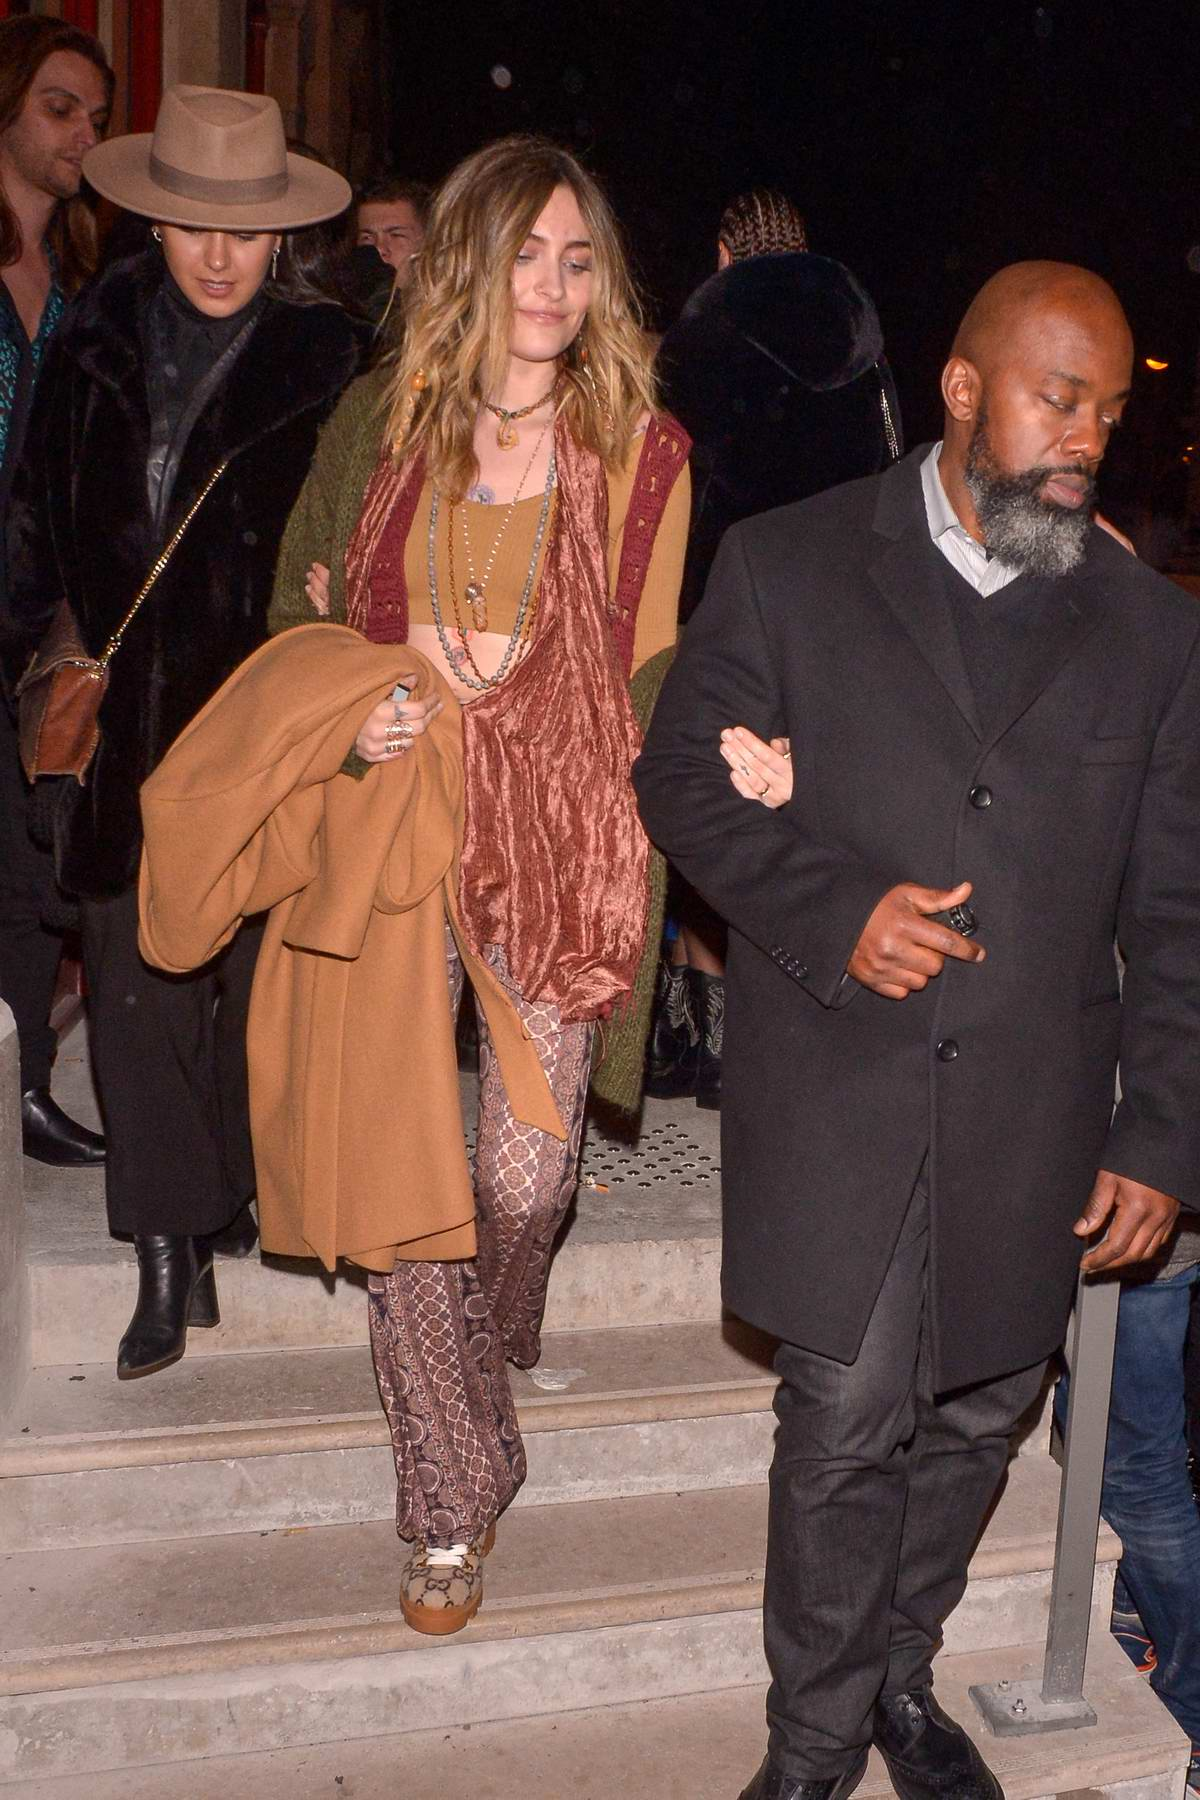 Paris Jackson seen leaving the Jean Paul Gaultier show in Paris, France